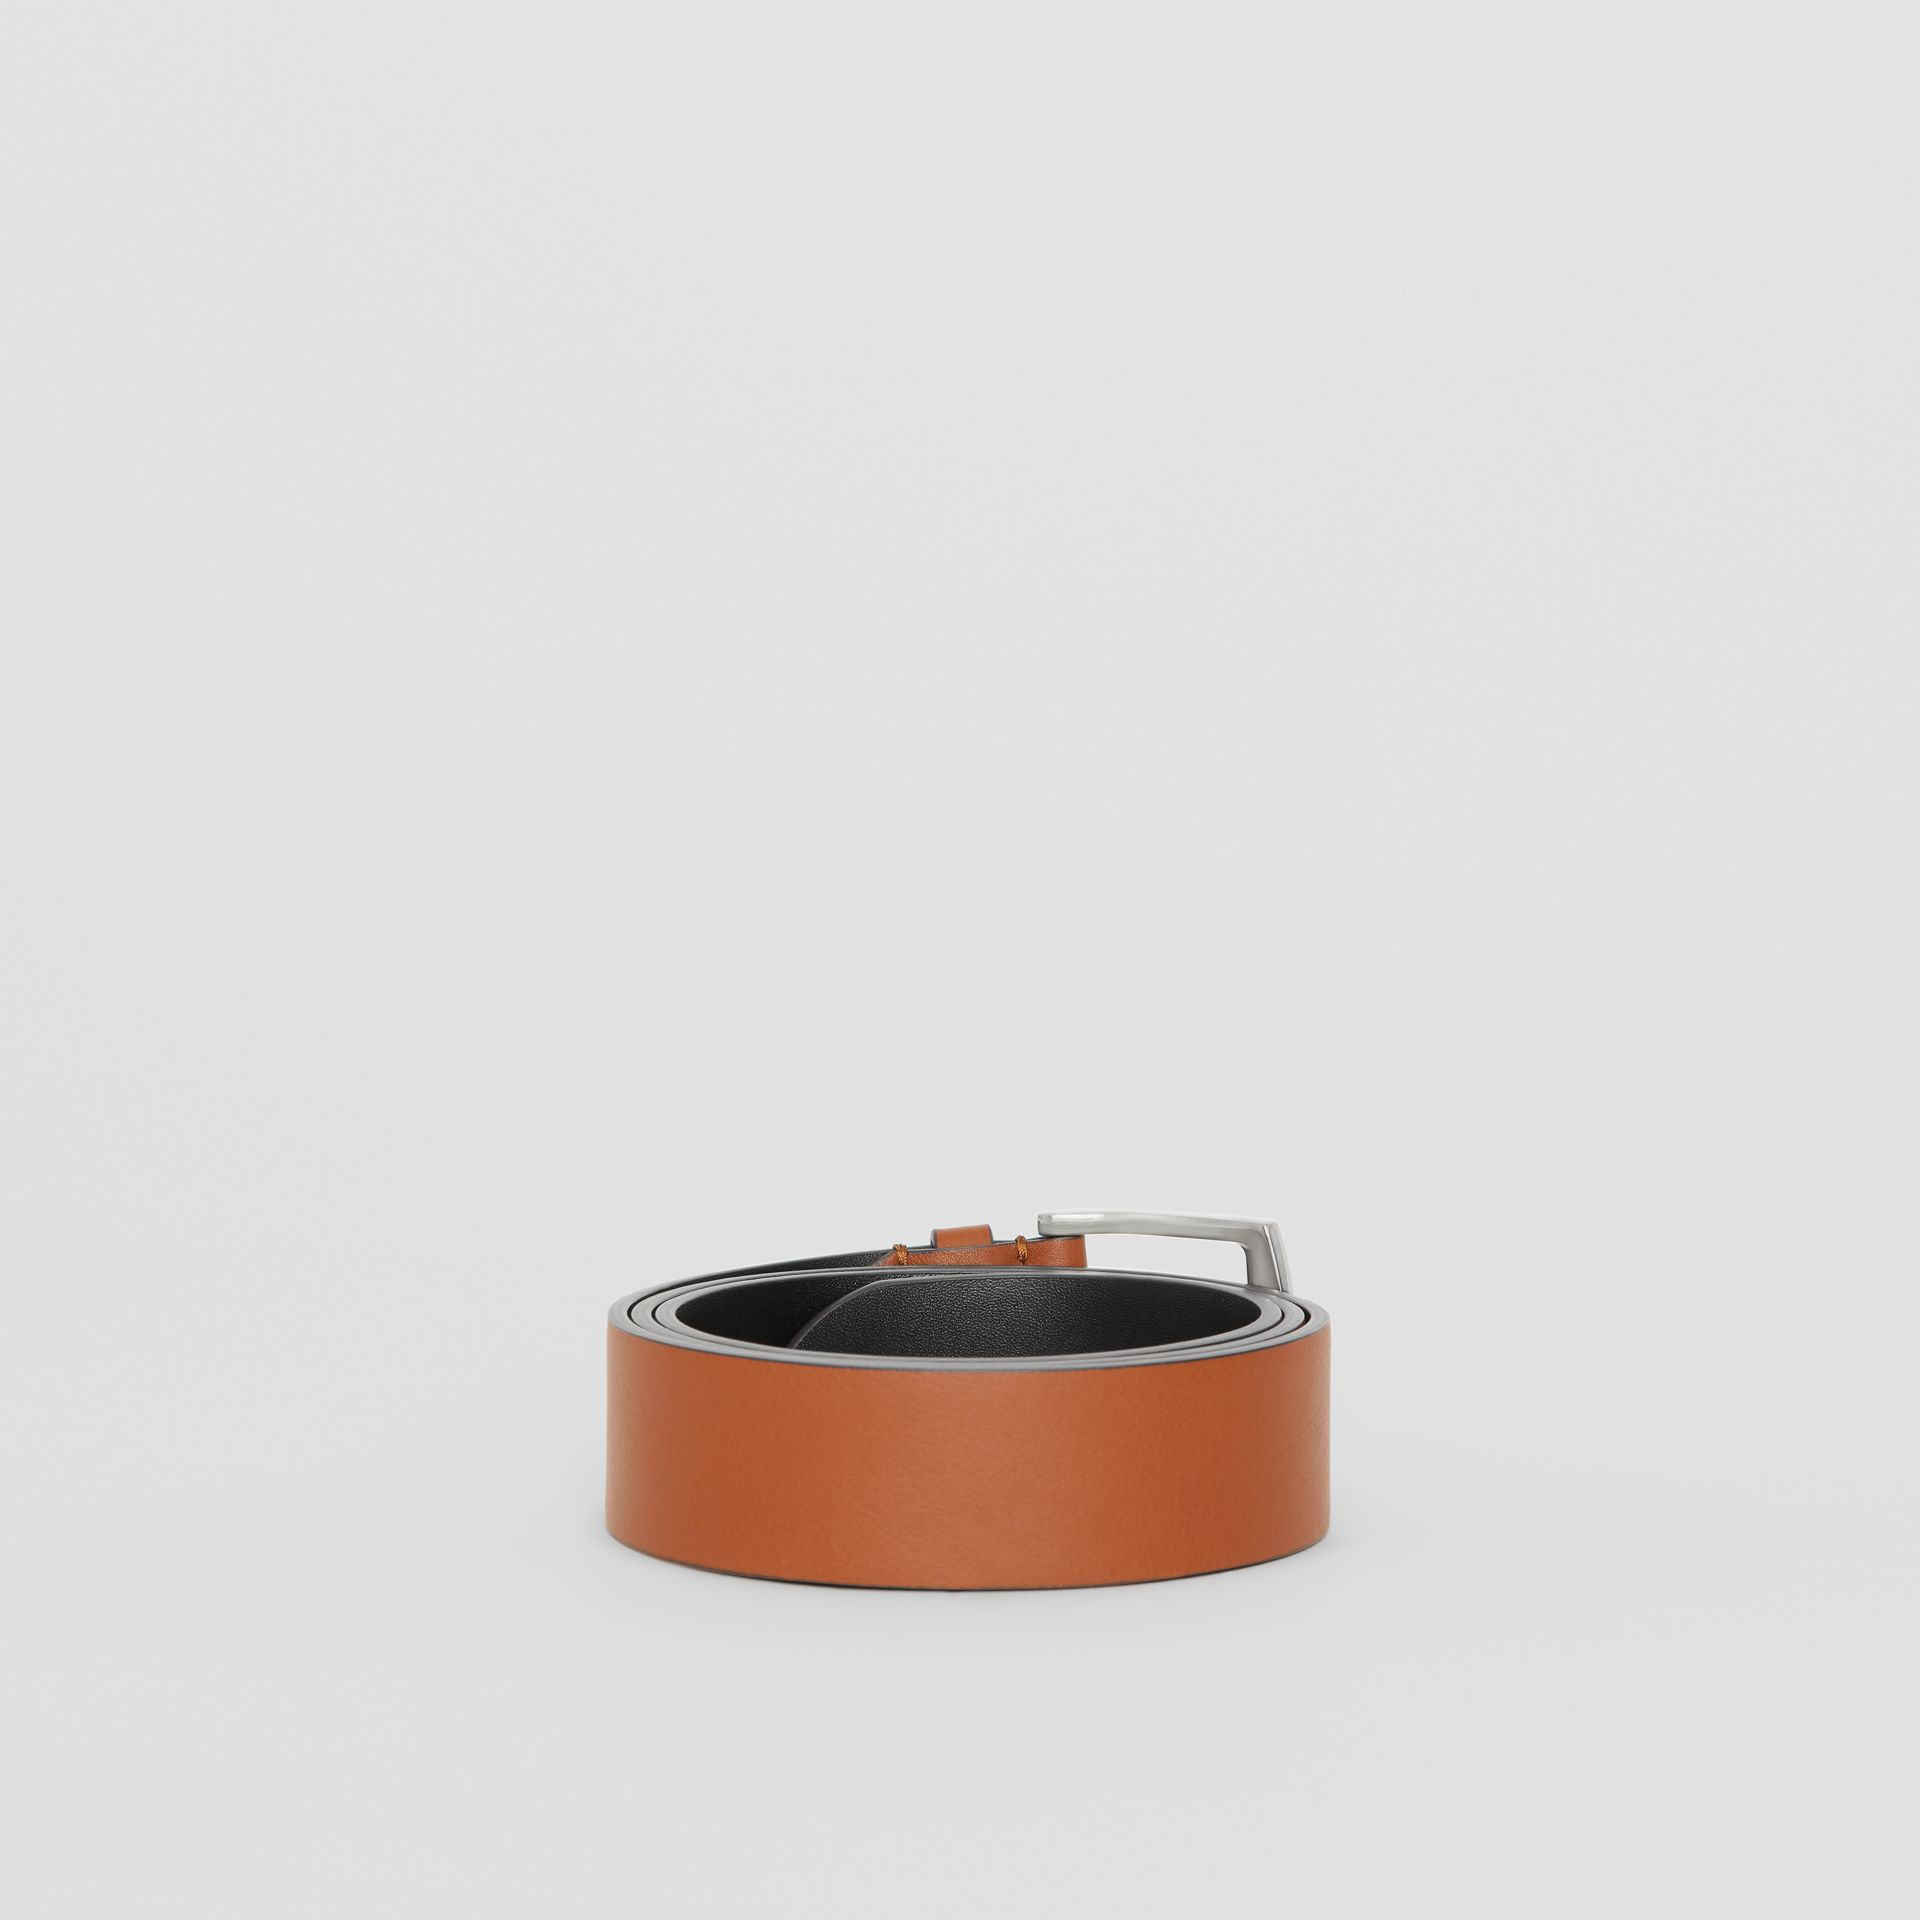 Embossed Crest Leather Belt in Chestnut Brown - Men | Burberry United States - gallery image 4